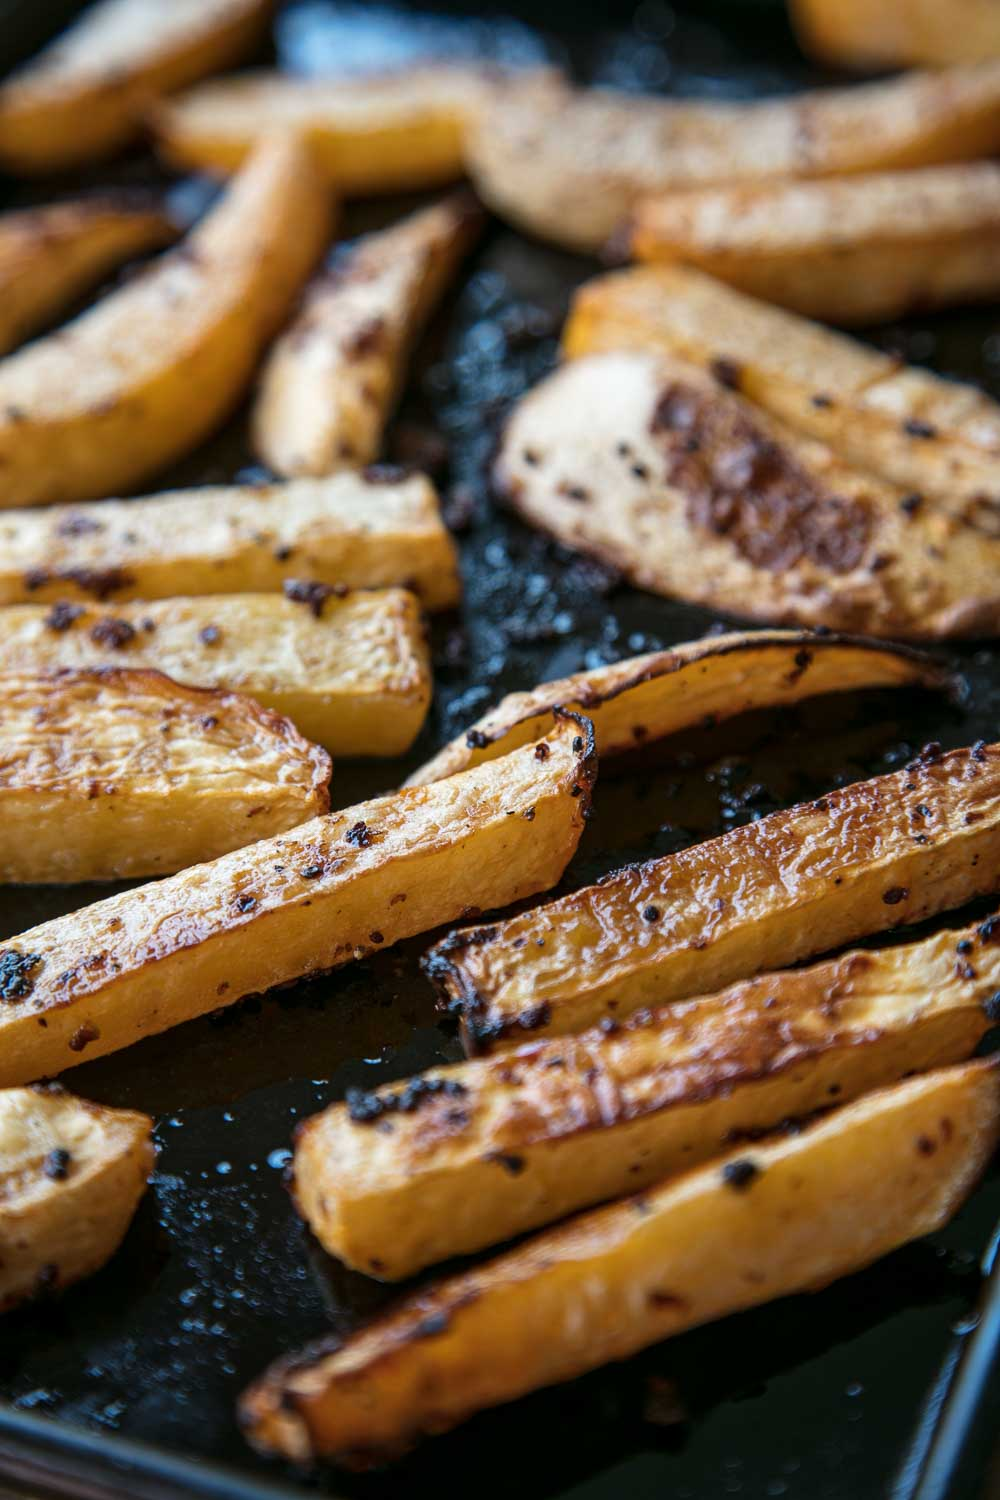 Roasted swede chips on a baking tray.